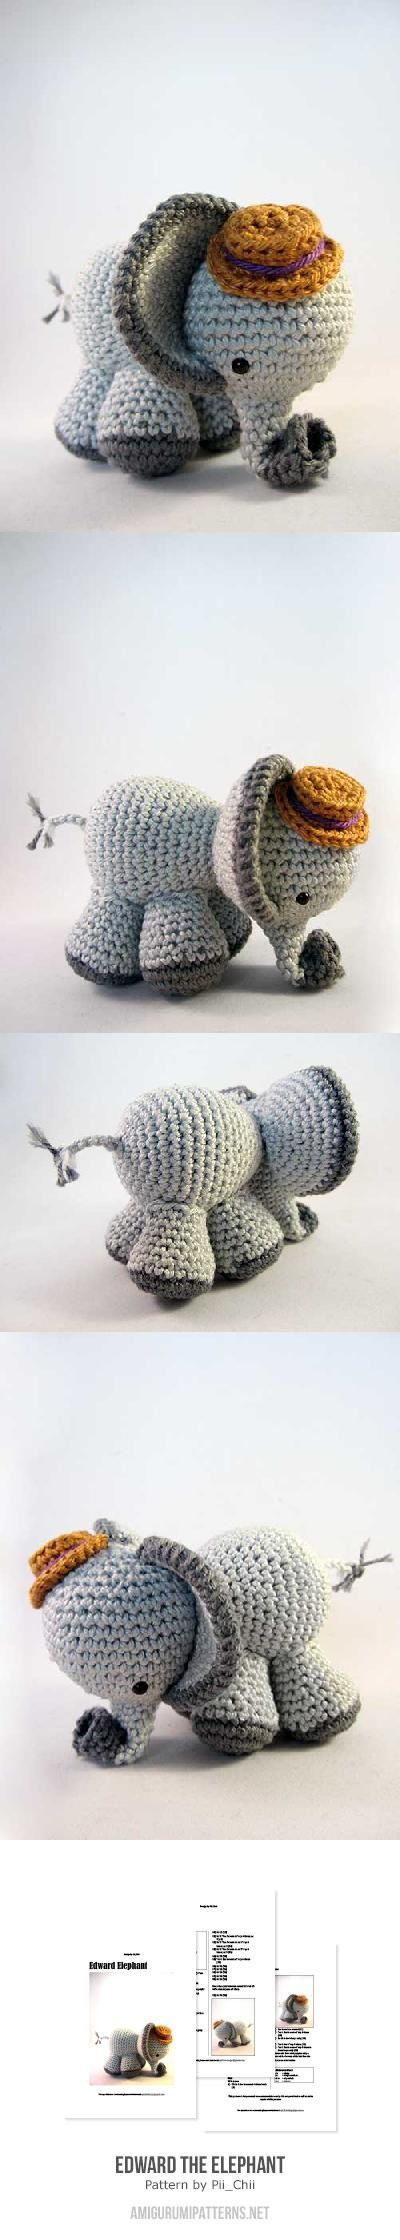 128 mejores imágenes sobre Crochet is probably a thing en Pinterest ...